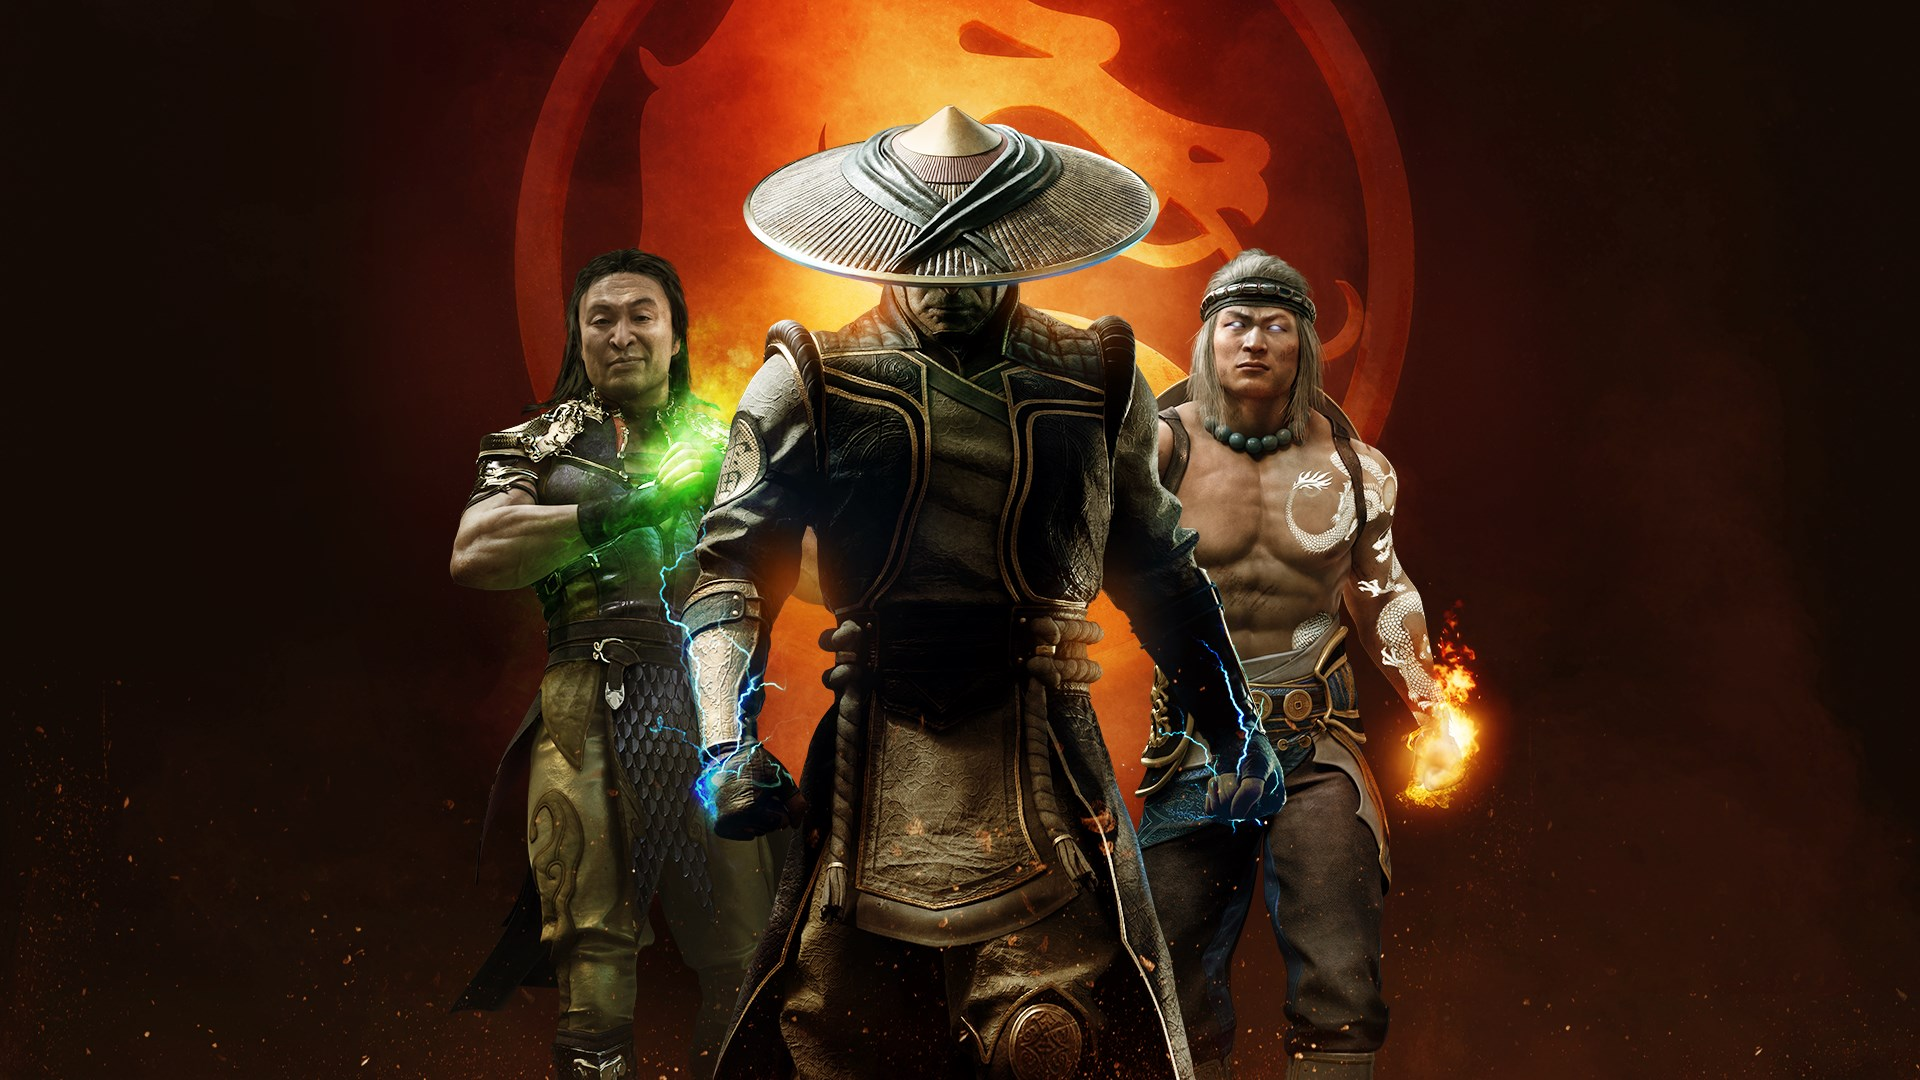 Extension Mortal Kombat 11: Aftermath